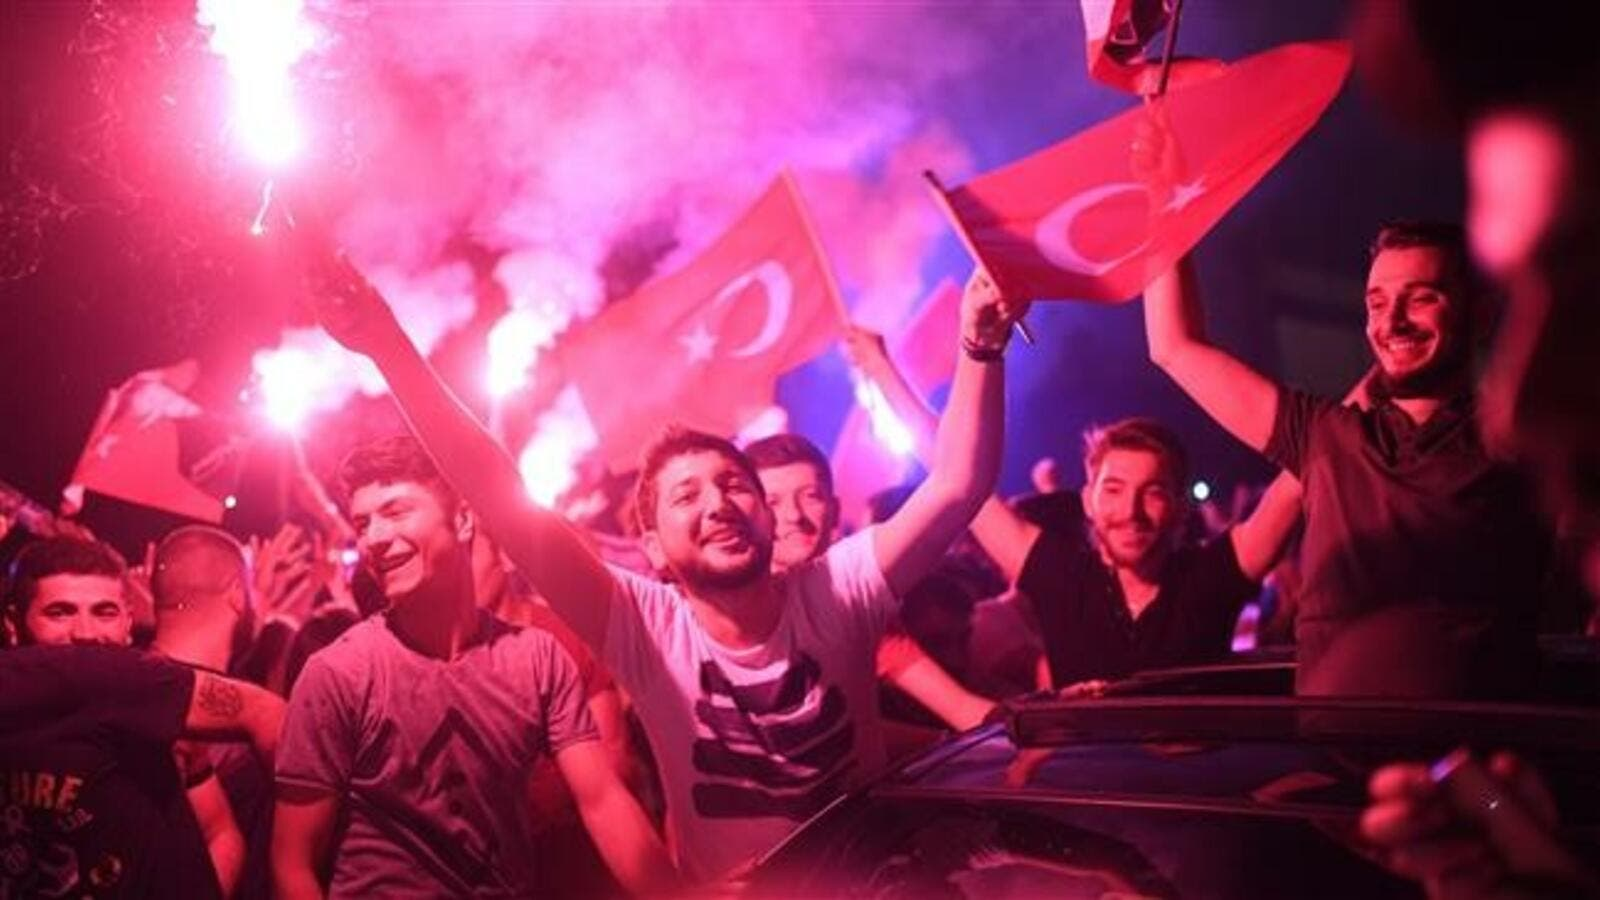 Turkish people gather to celebrate after the Istanbul mayoral elections re-run, at Kadikoy in Istanbul, on June 23, 2019.